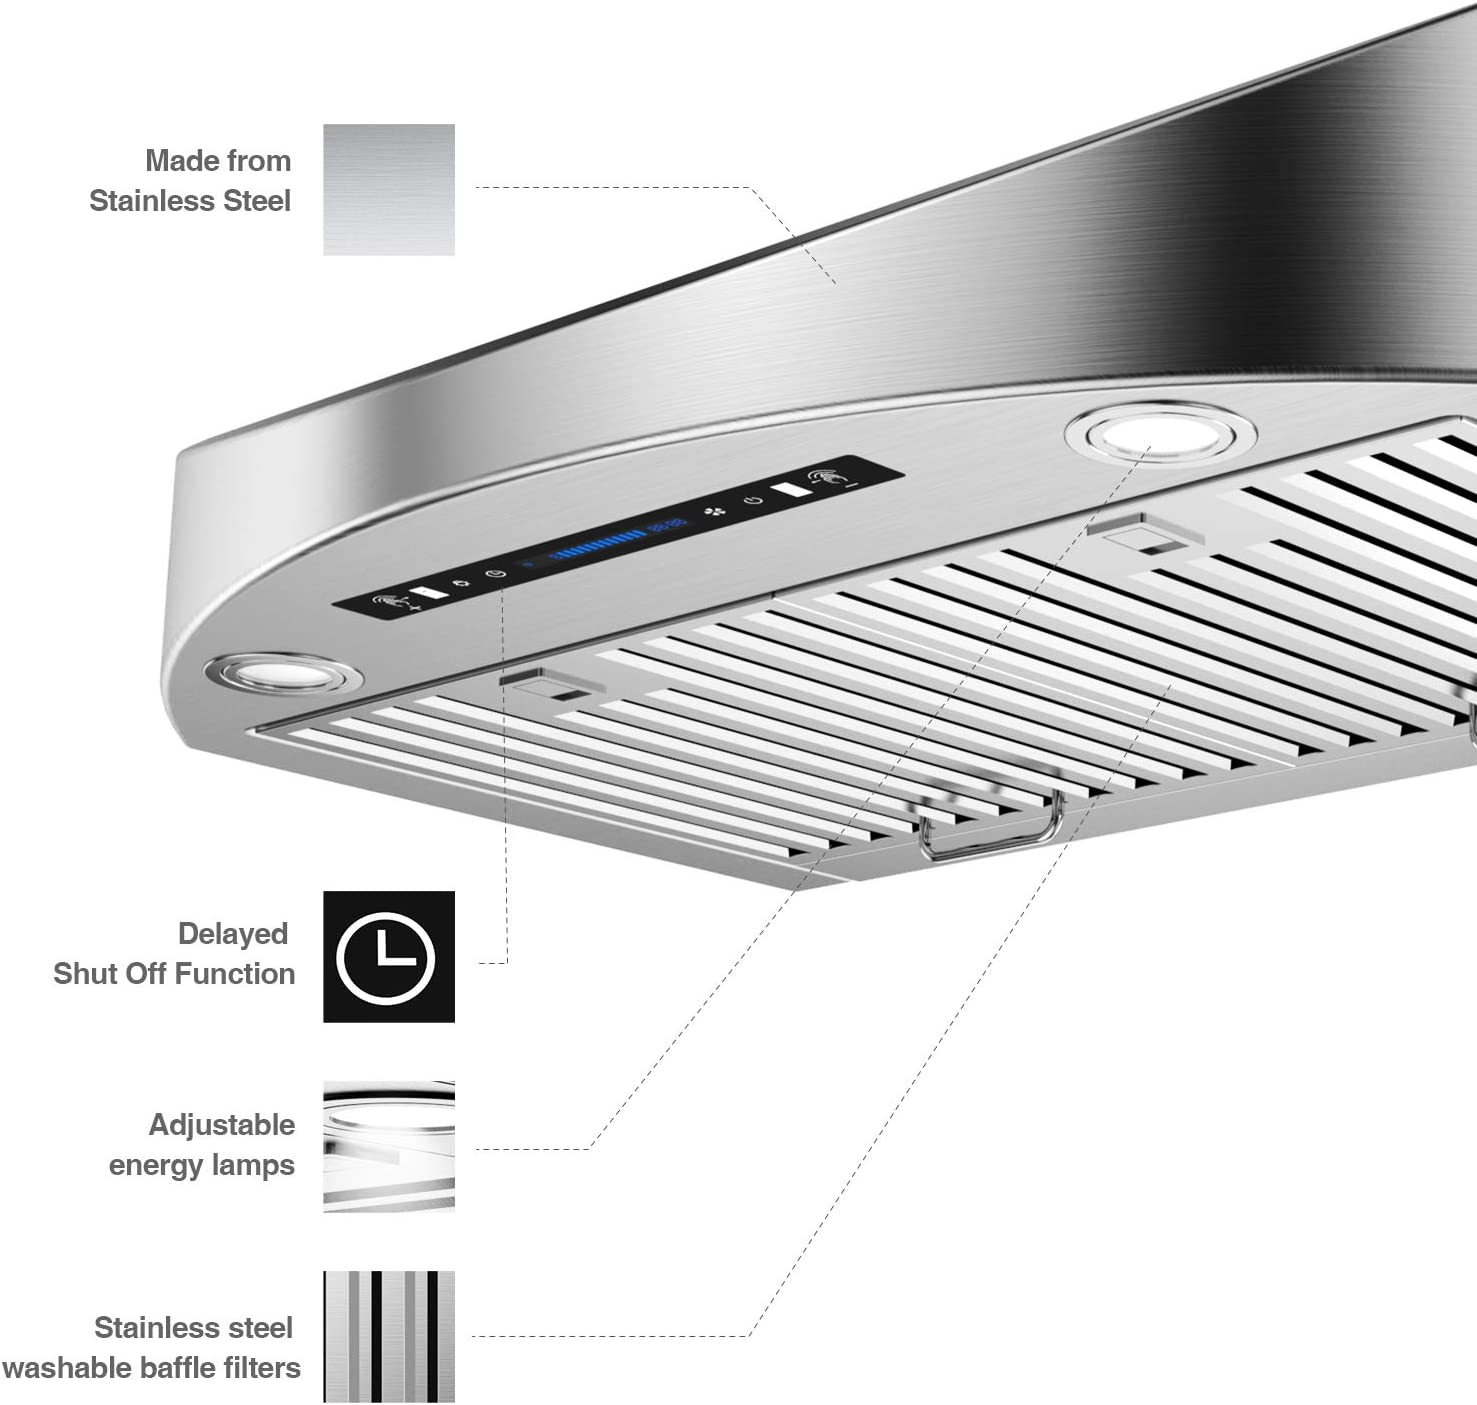 IKTCH 30 Inch Under Cabinet Range Hood 900-CFM 4 Speed Gesture Sensing//Touch Control Switch Panel Kitchen Stove Vent with 2 Pcs Adjustable Led Lights Baffle Filters with Handlebar